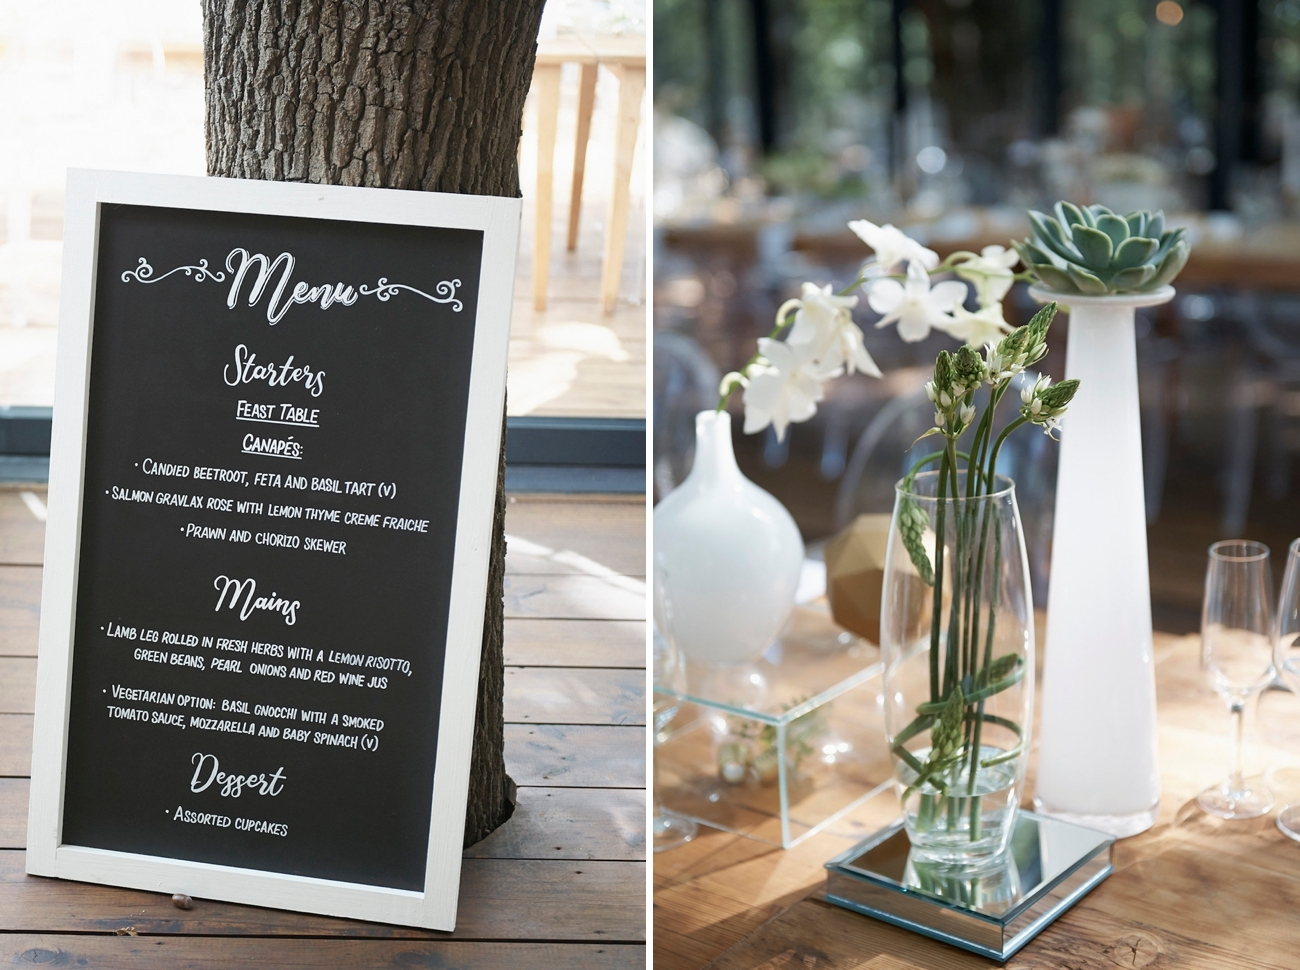 Romantic Forest Wedding Decor | Image: Knit Together Photography